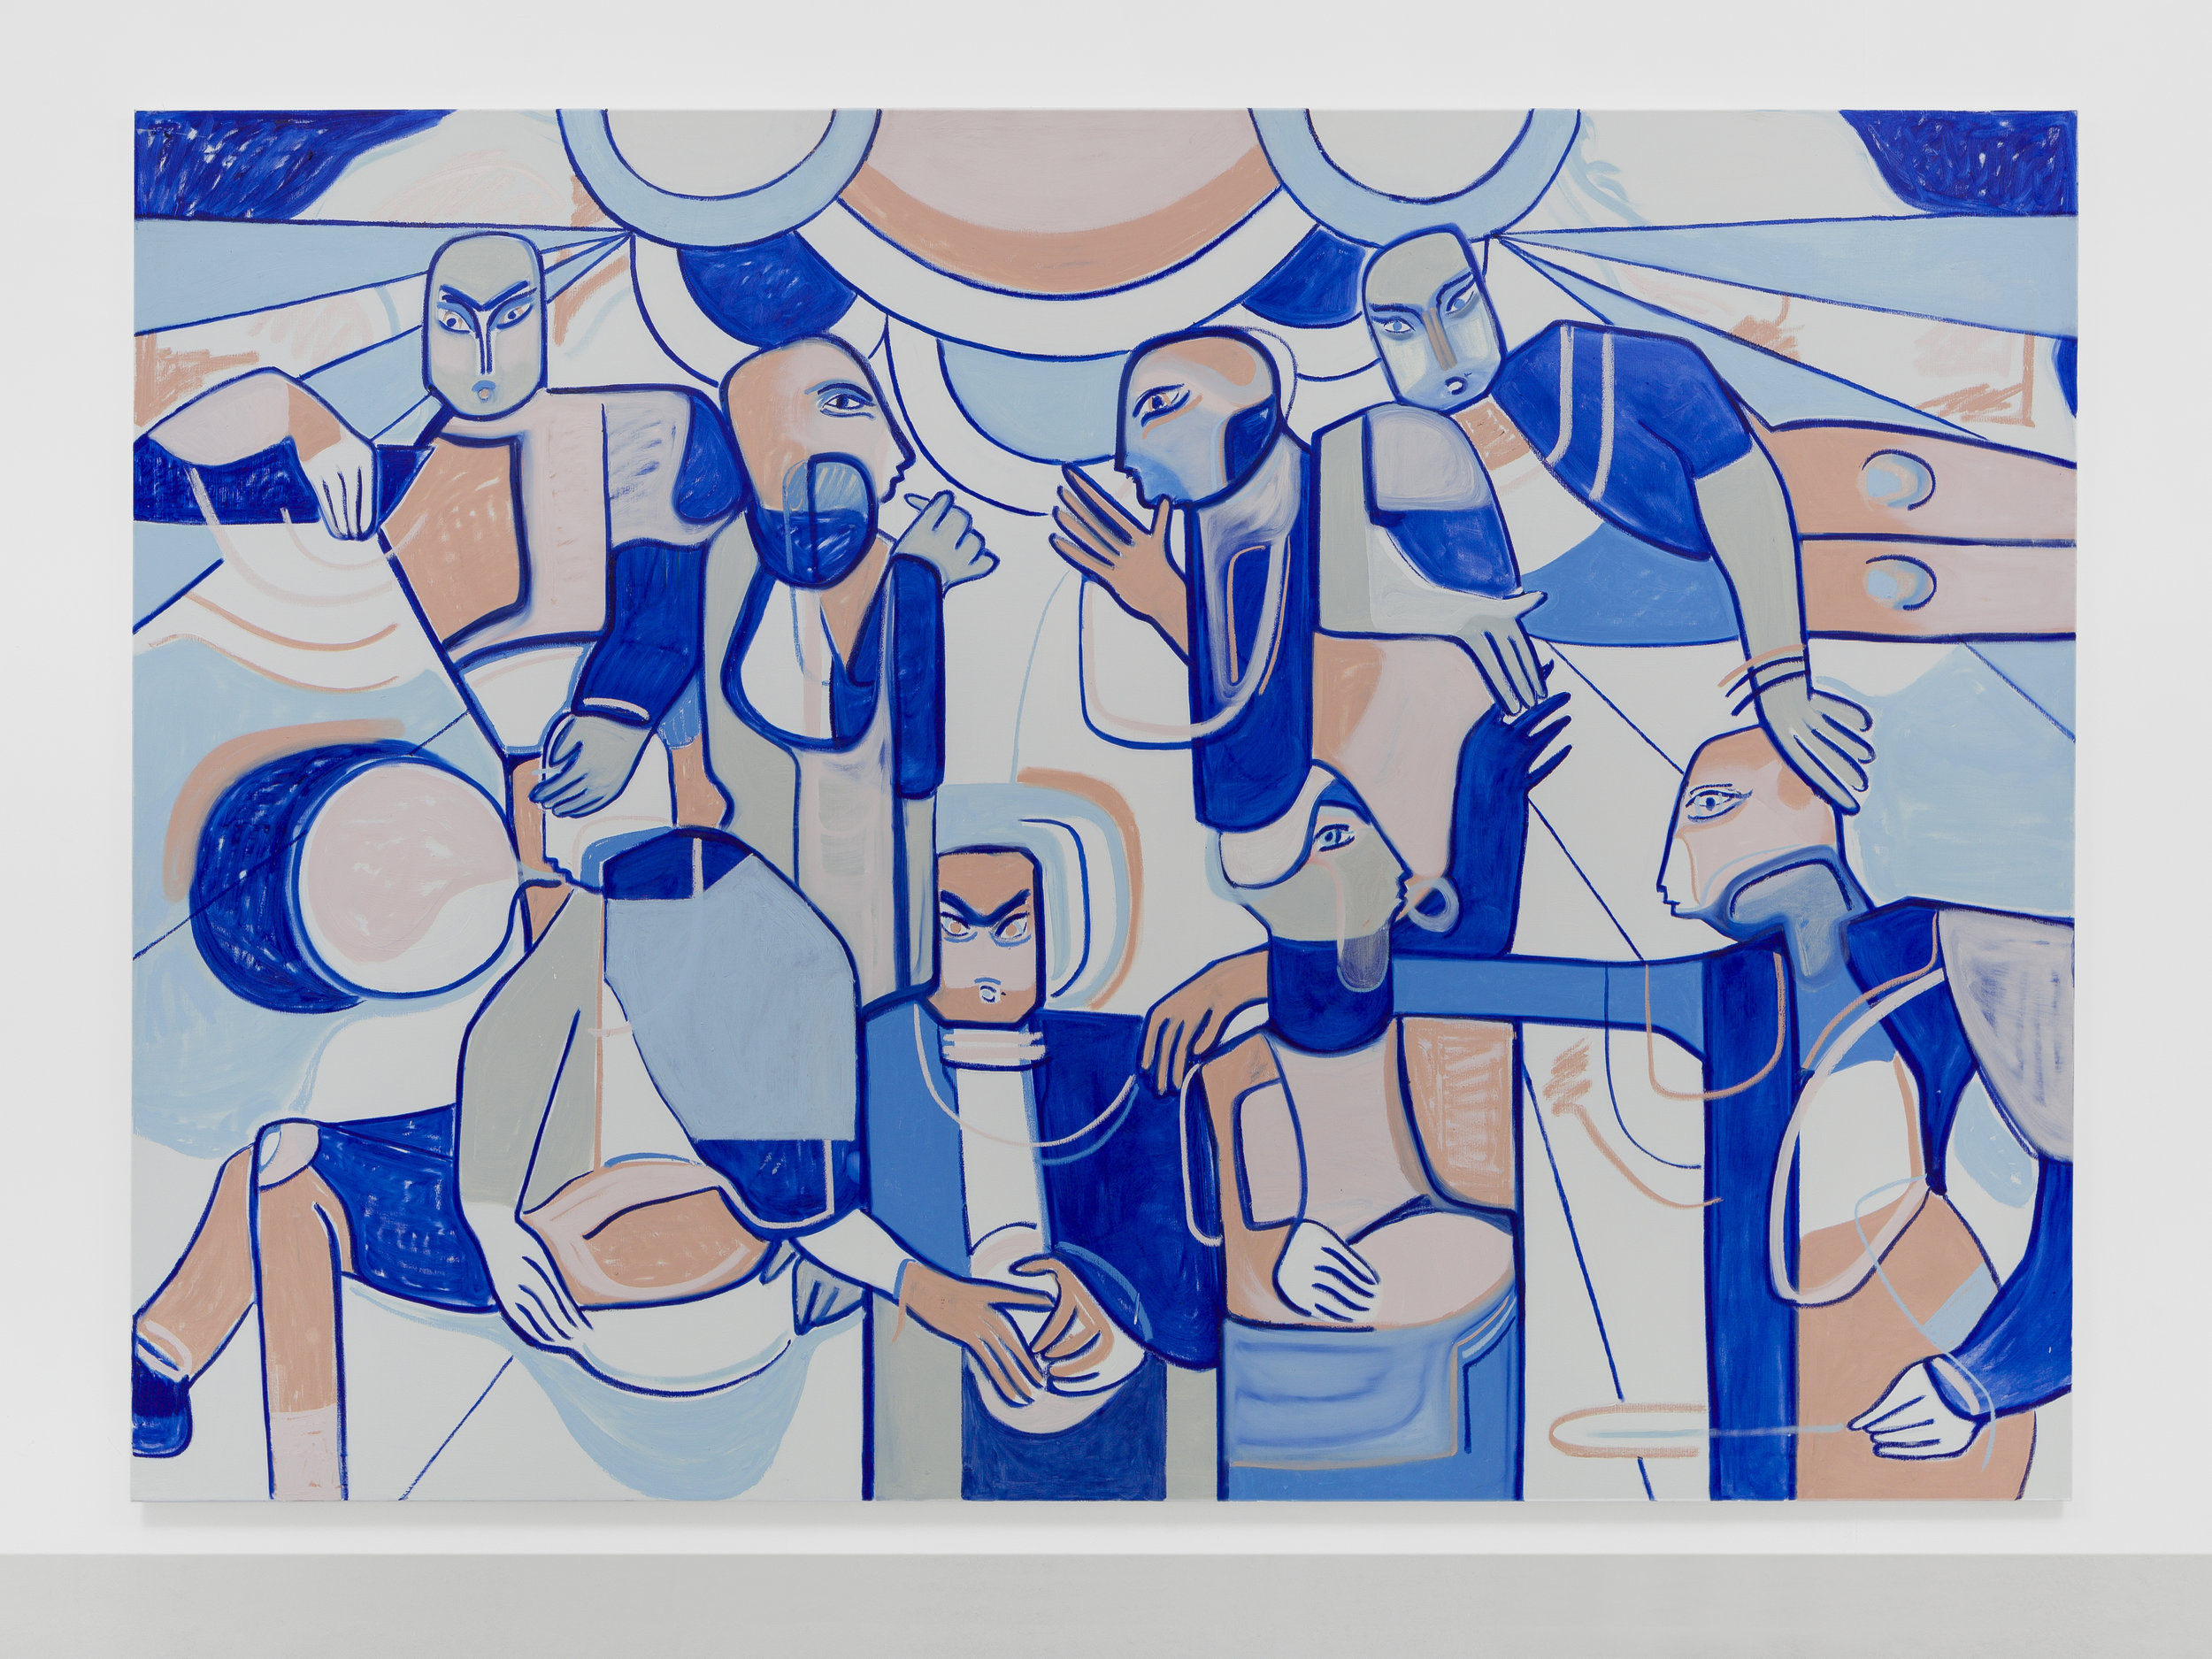 Melike Kara, What it feels like blue, 2019, ol stick and acrylic on canvas, 200 x 280 cm @Ollie Hammick.jpg